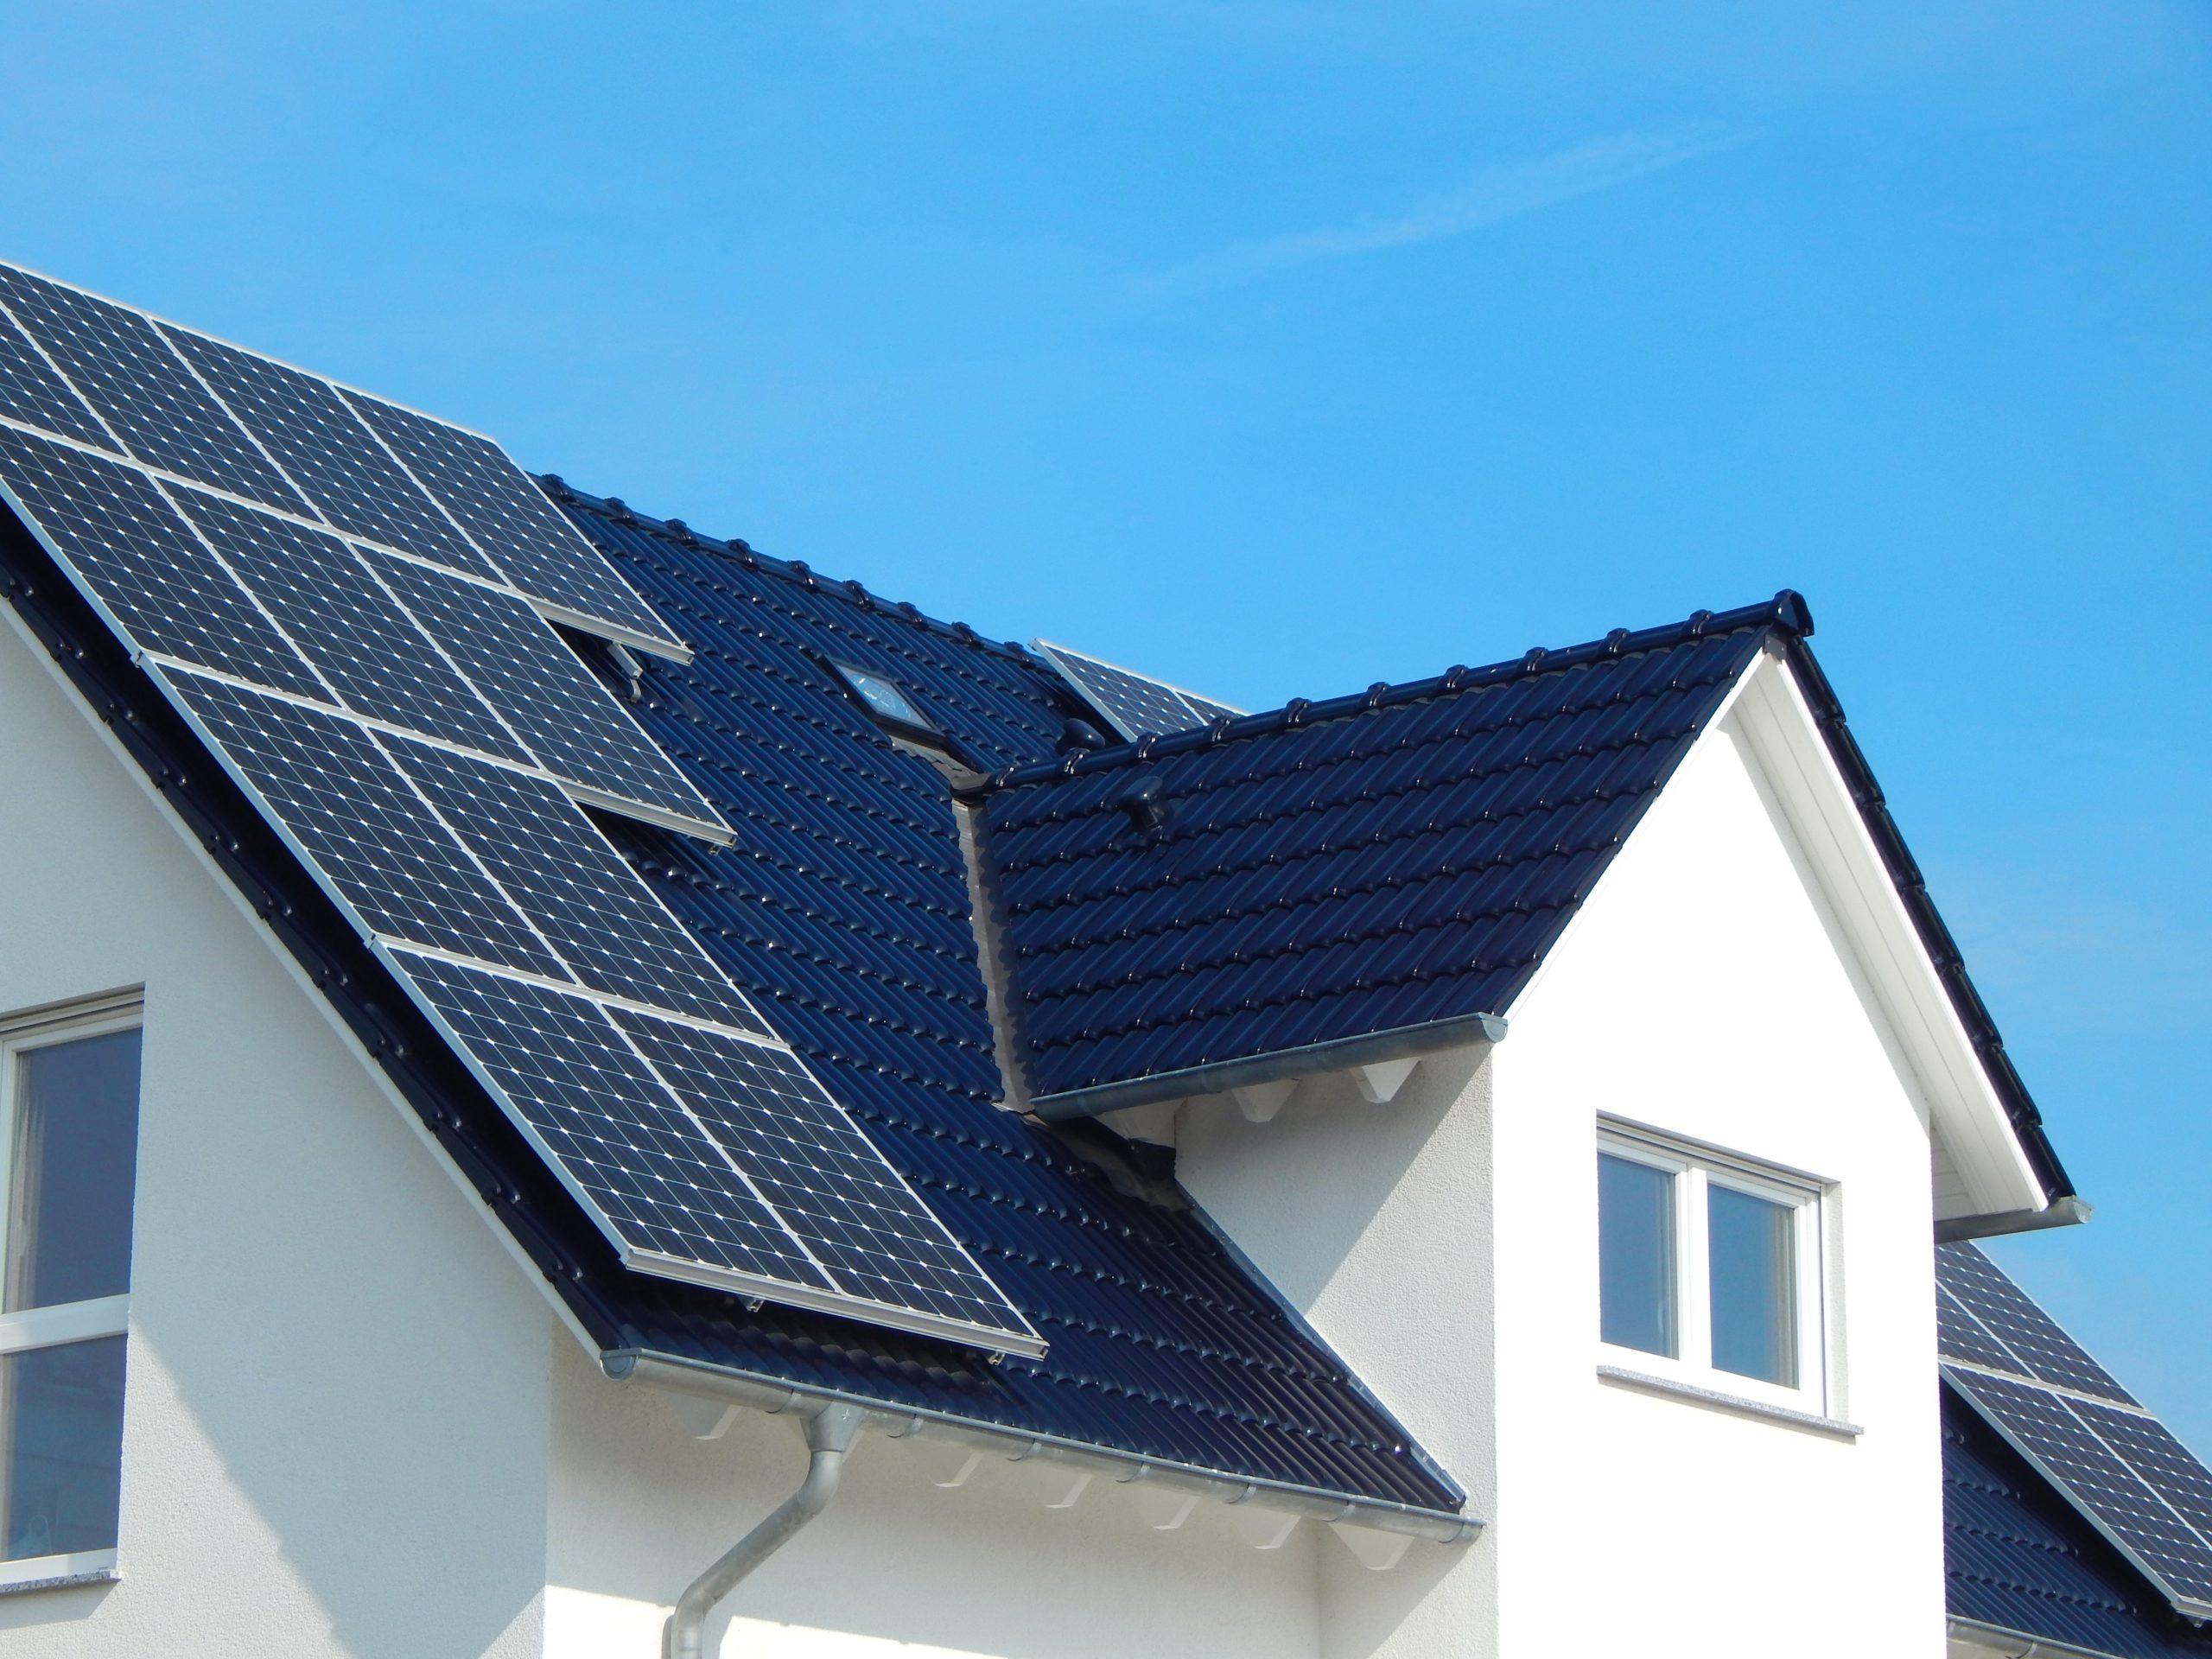 Solar energy: A Black tile roof with solar panels